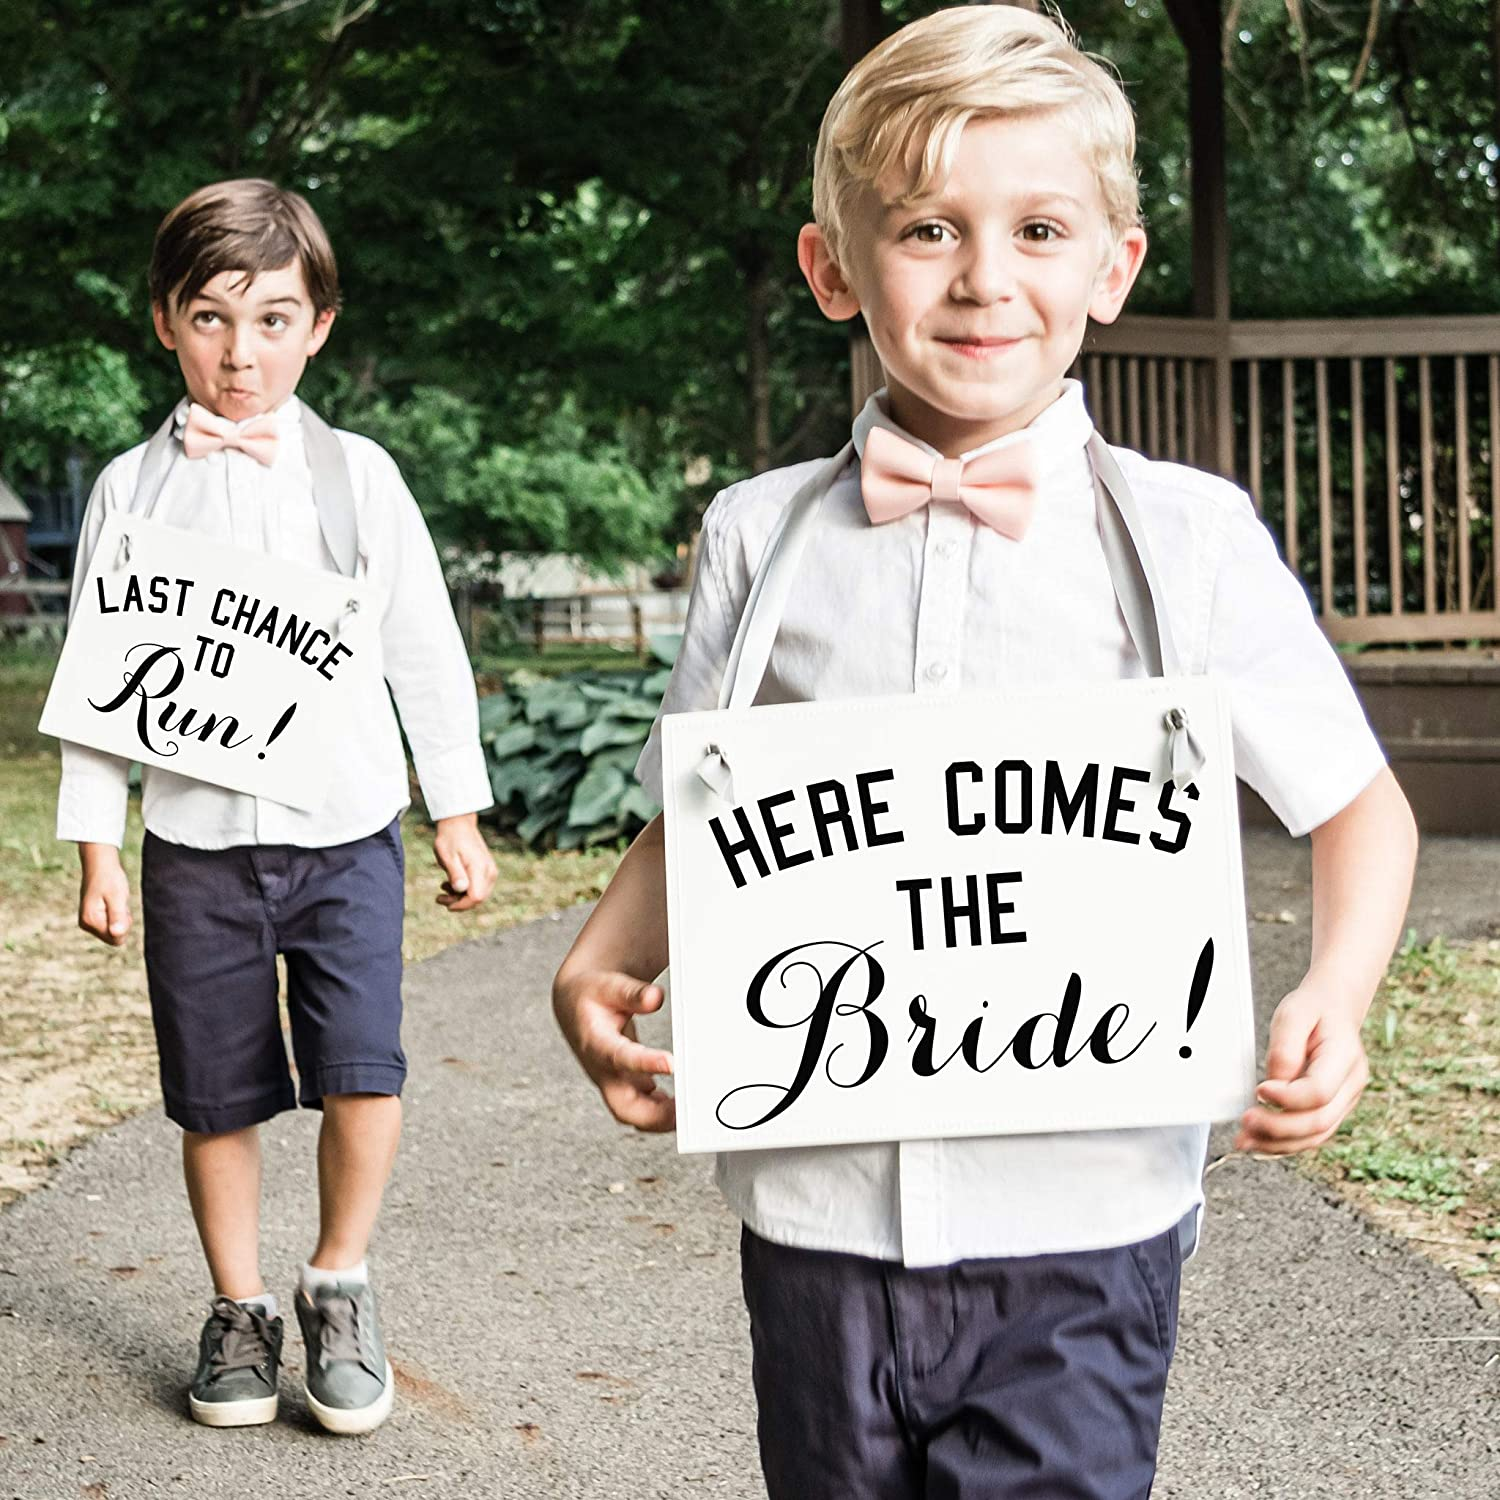 Last Chance To Run Set of 2 Ring Bearer Signs Flower Girl Banners for Wedding Ceremony Here Comes the Bride Sign